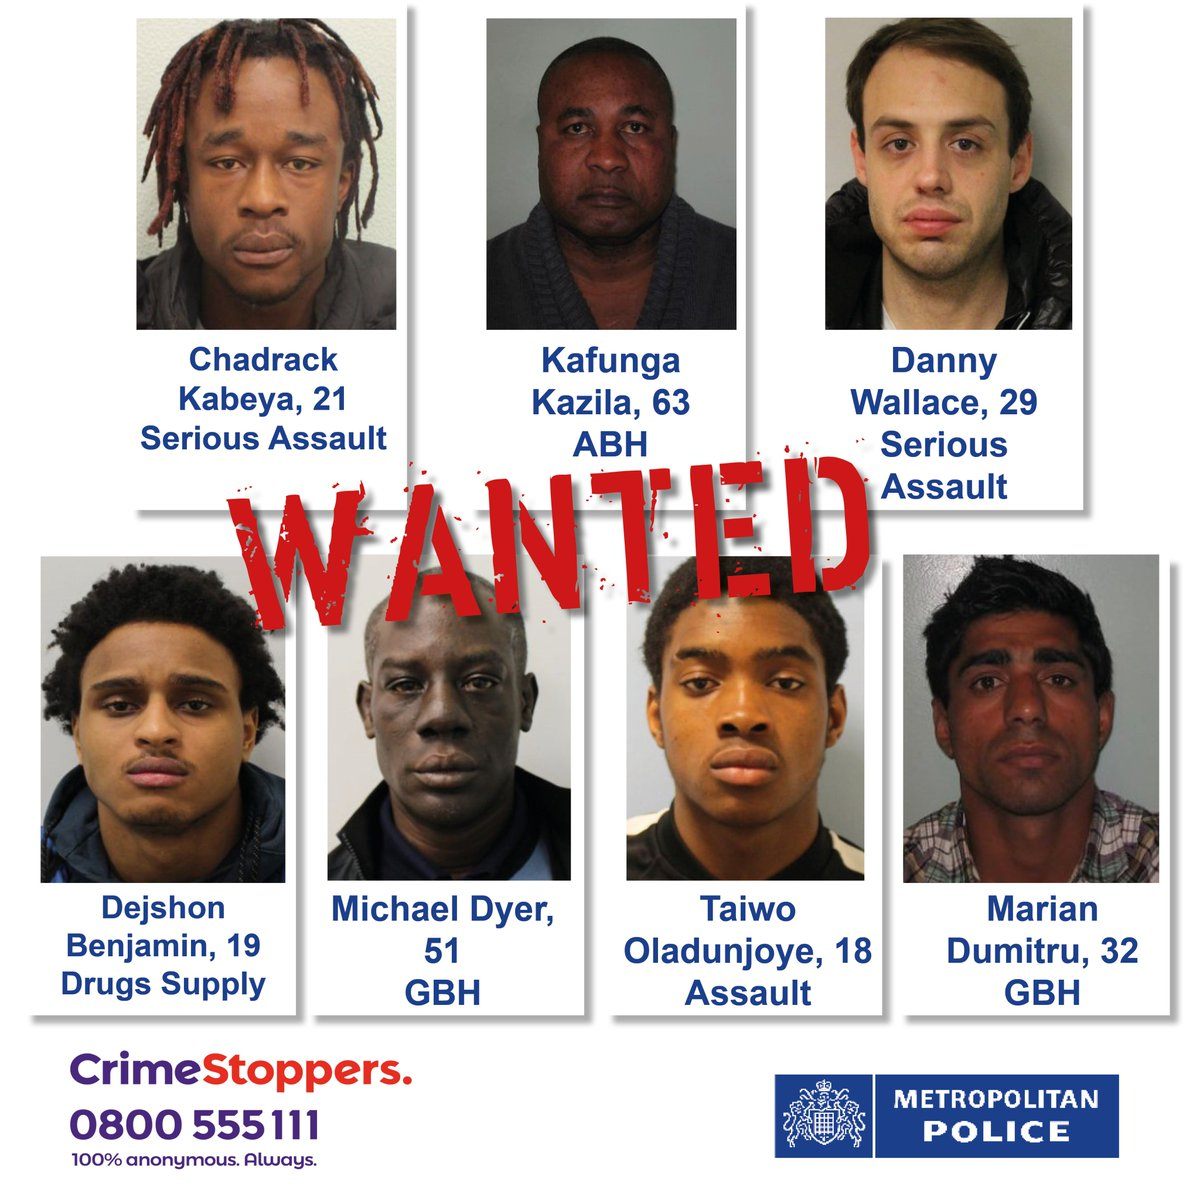 Please SHARE: Help us find these individuals who are #wanted in connection to violent crimes in #London, some of which left victims with serious injuries. Be our eyes and our ears #LoveYourCommunity #FindThemFriday Please📞 @CrimestoppersUK on 0800 555 111 http://news.met.police.uk/news/wanted-help-keep-london-safe-do-you-know-these-people-358470 …